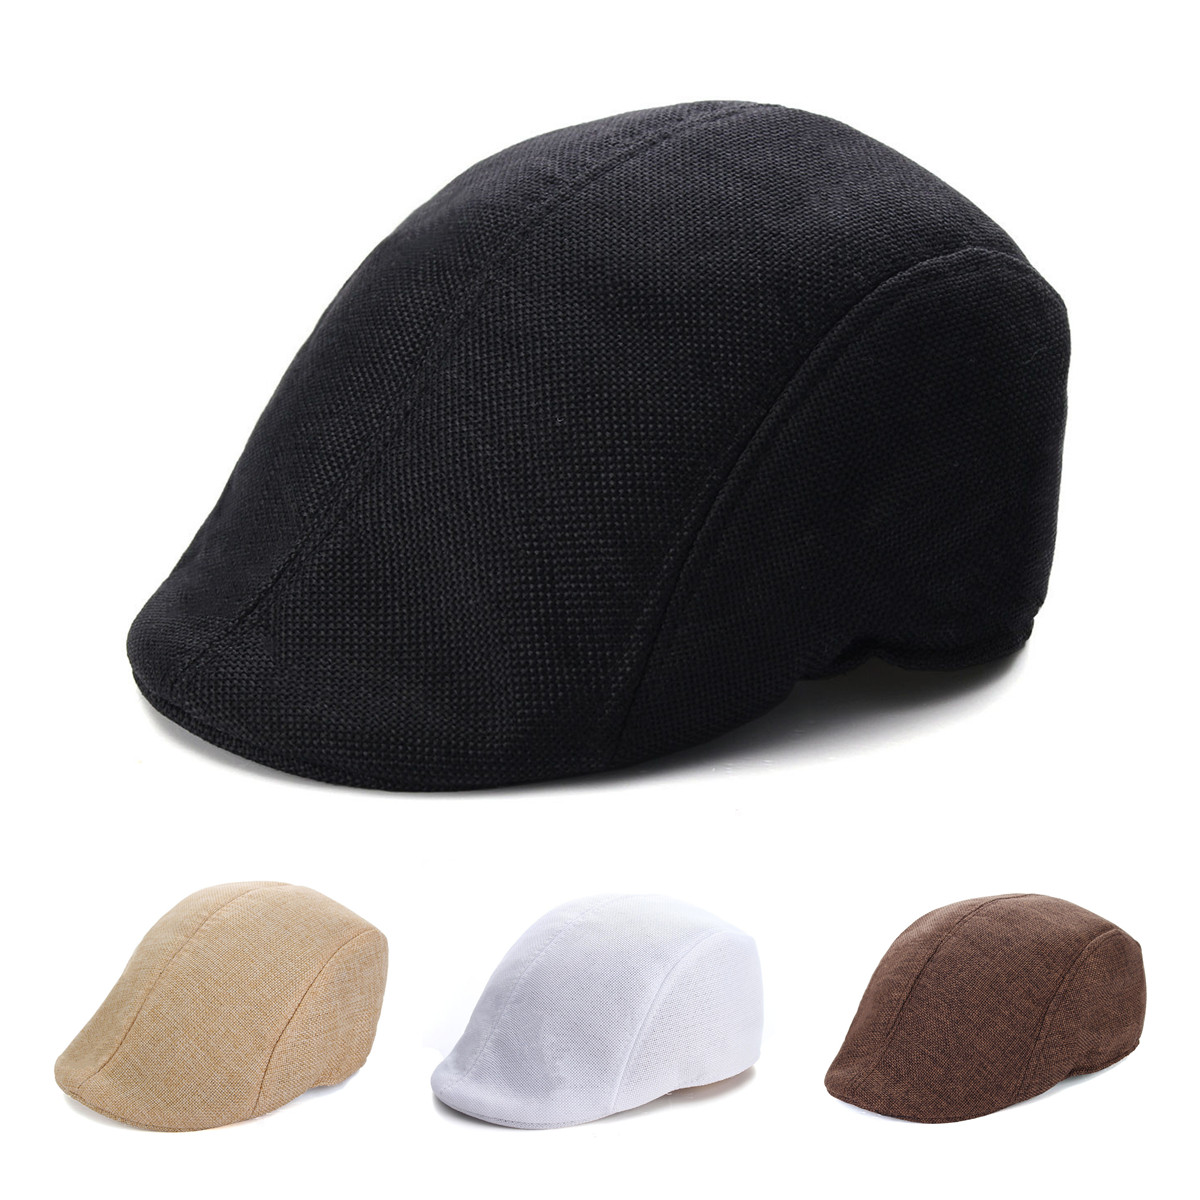 Mens Herringbone Flat Hat Peaked Racing Country Golf Newsboy Beret Cap baseball cap hat leather men winter cotton ear elderly outdoor peaked cap hat